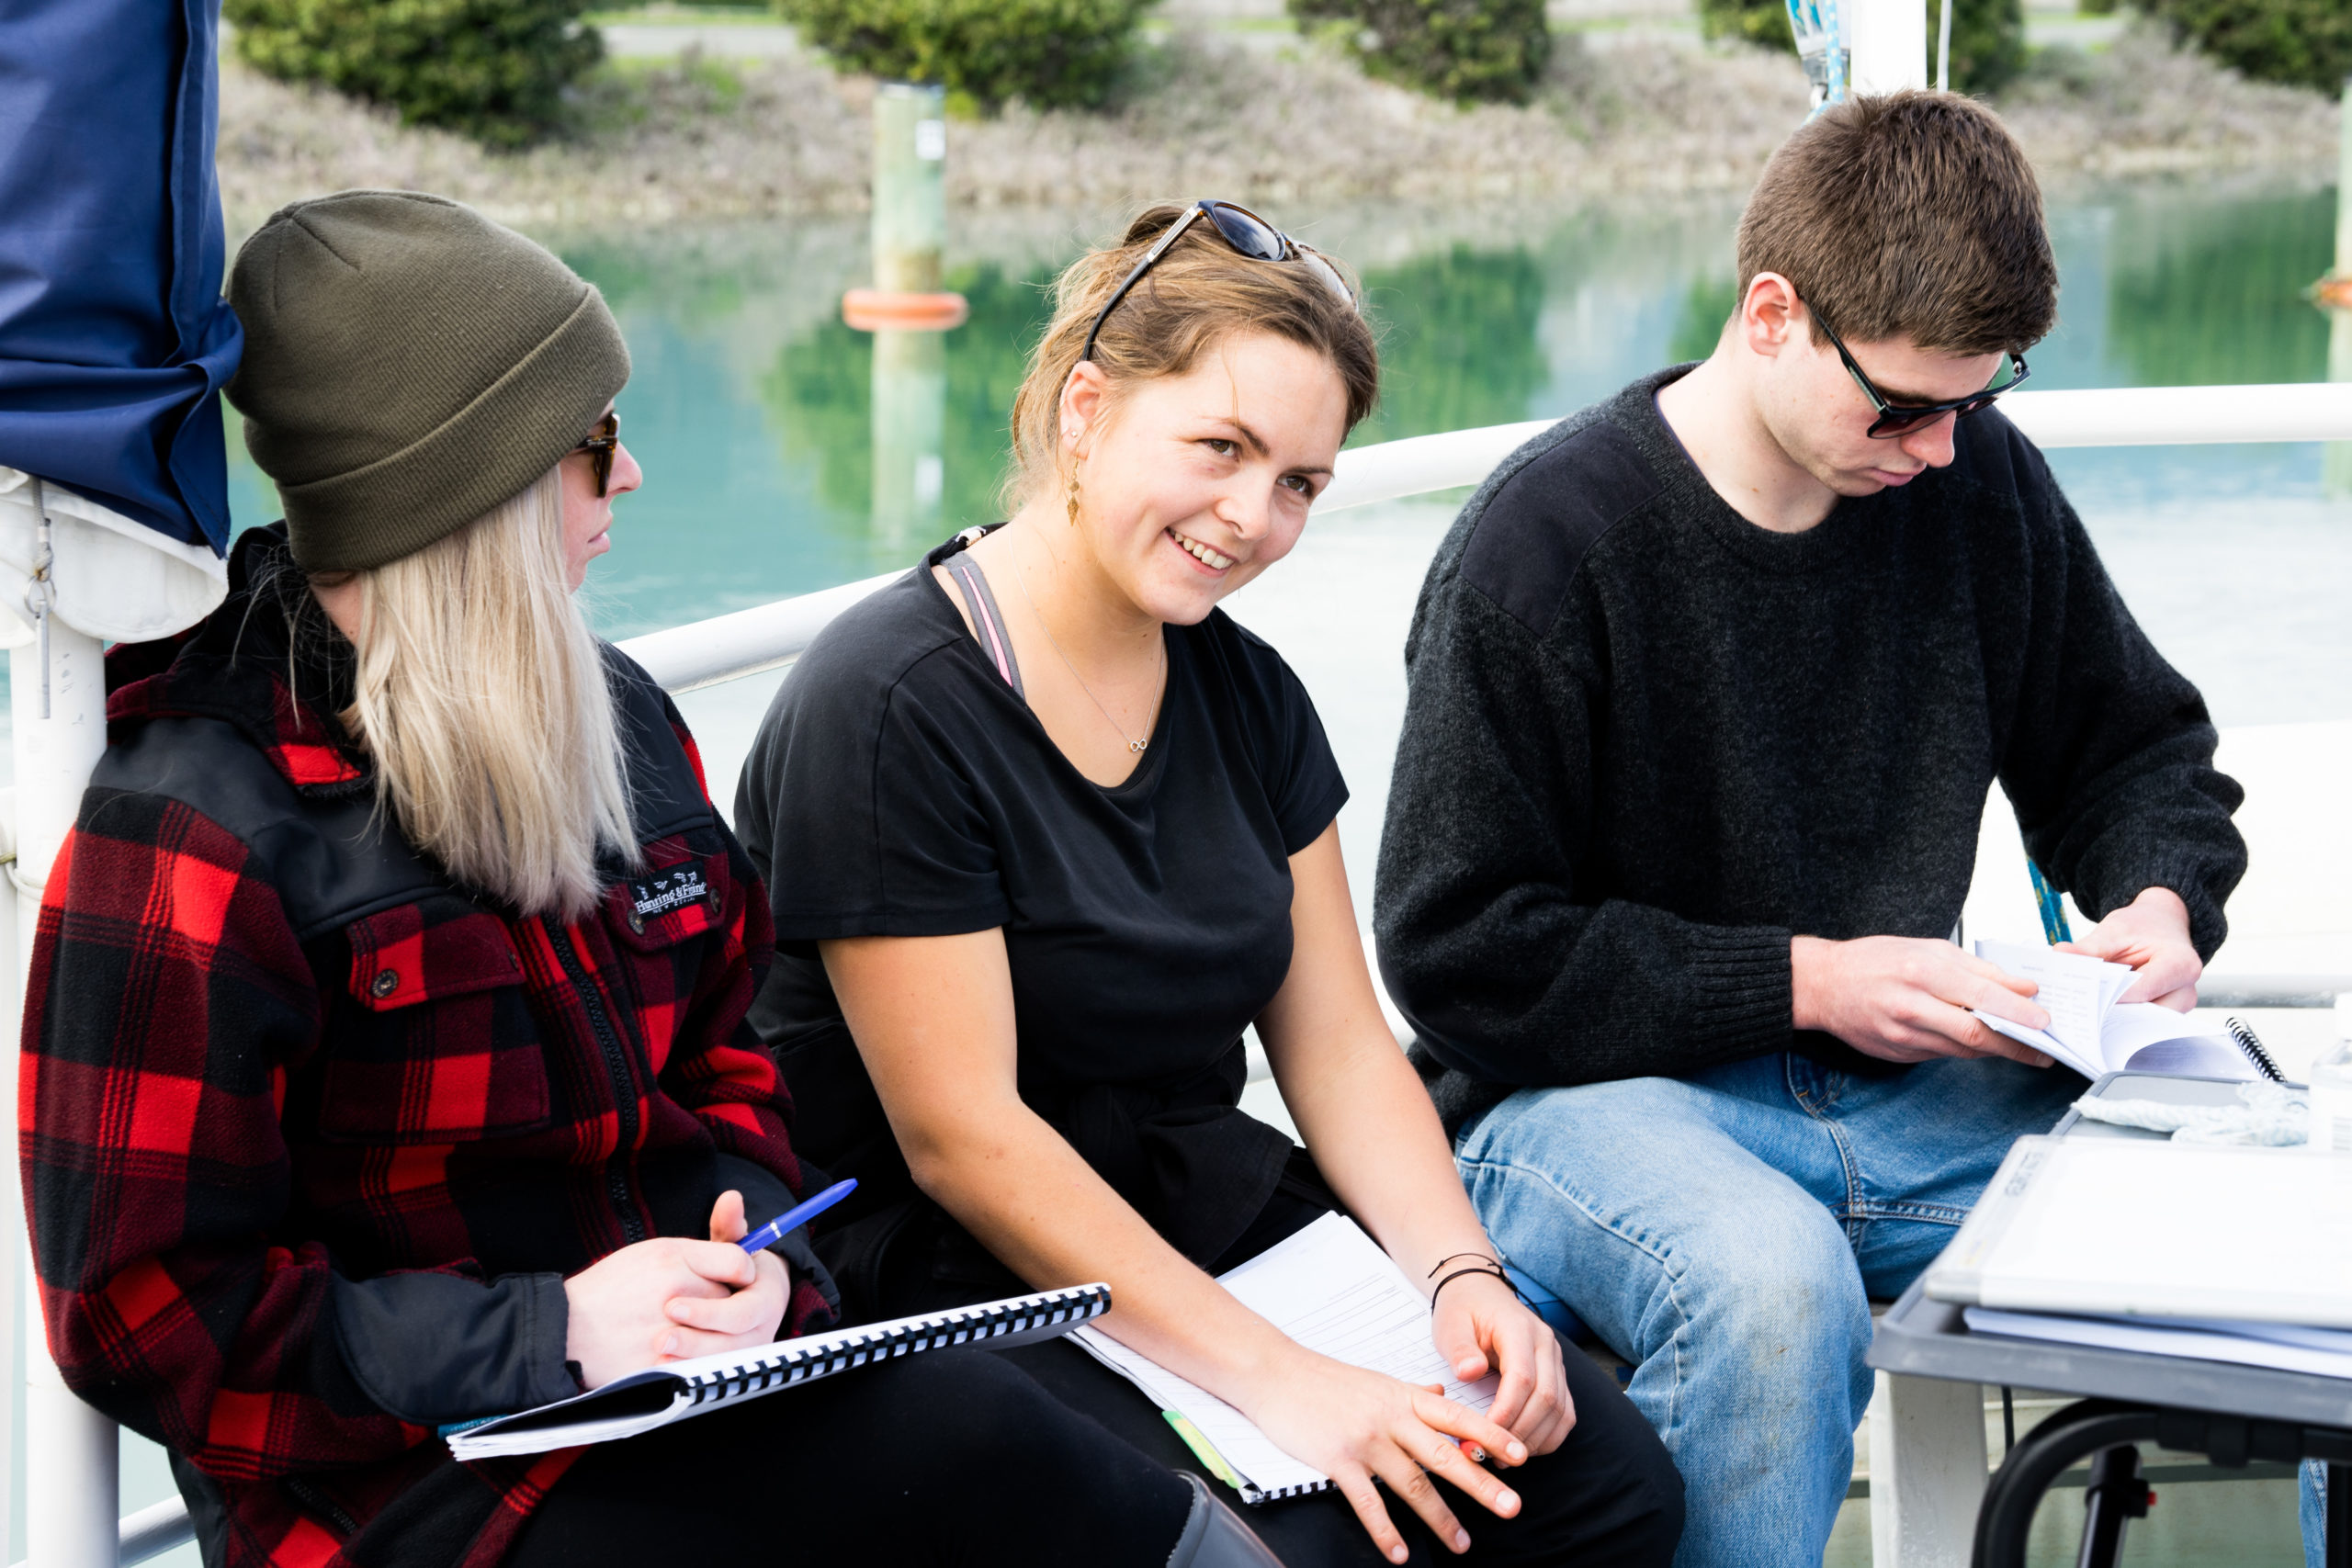 Students Preparing For Their Skipper Training Course